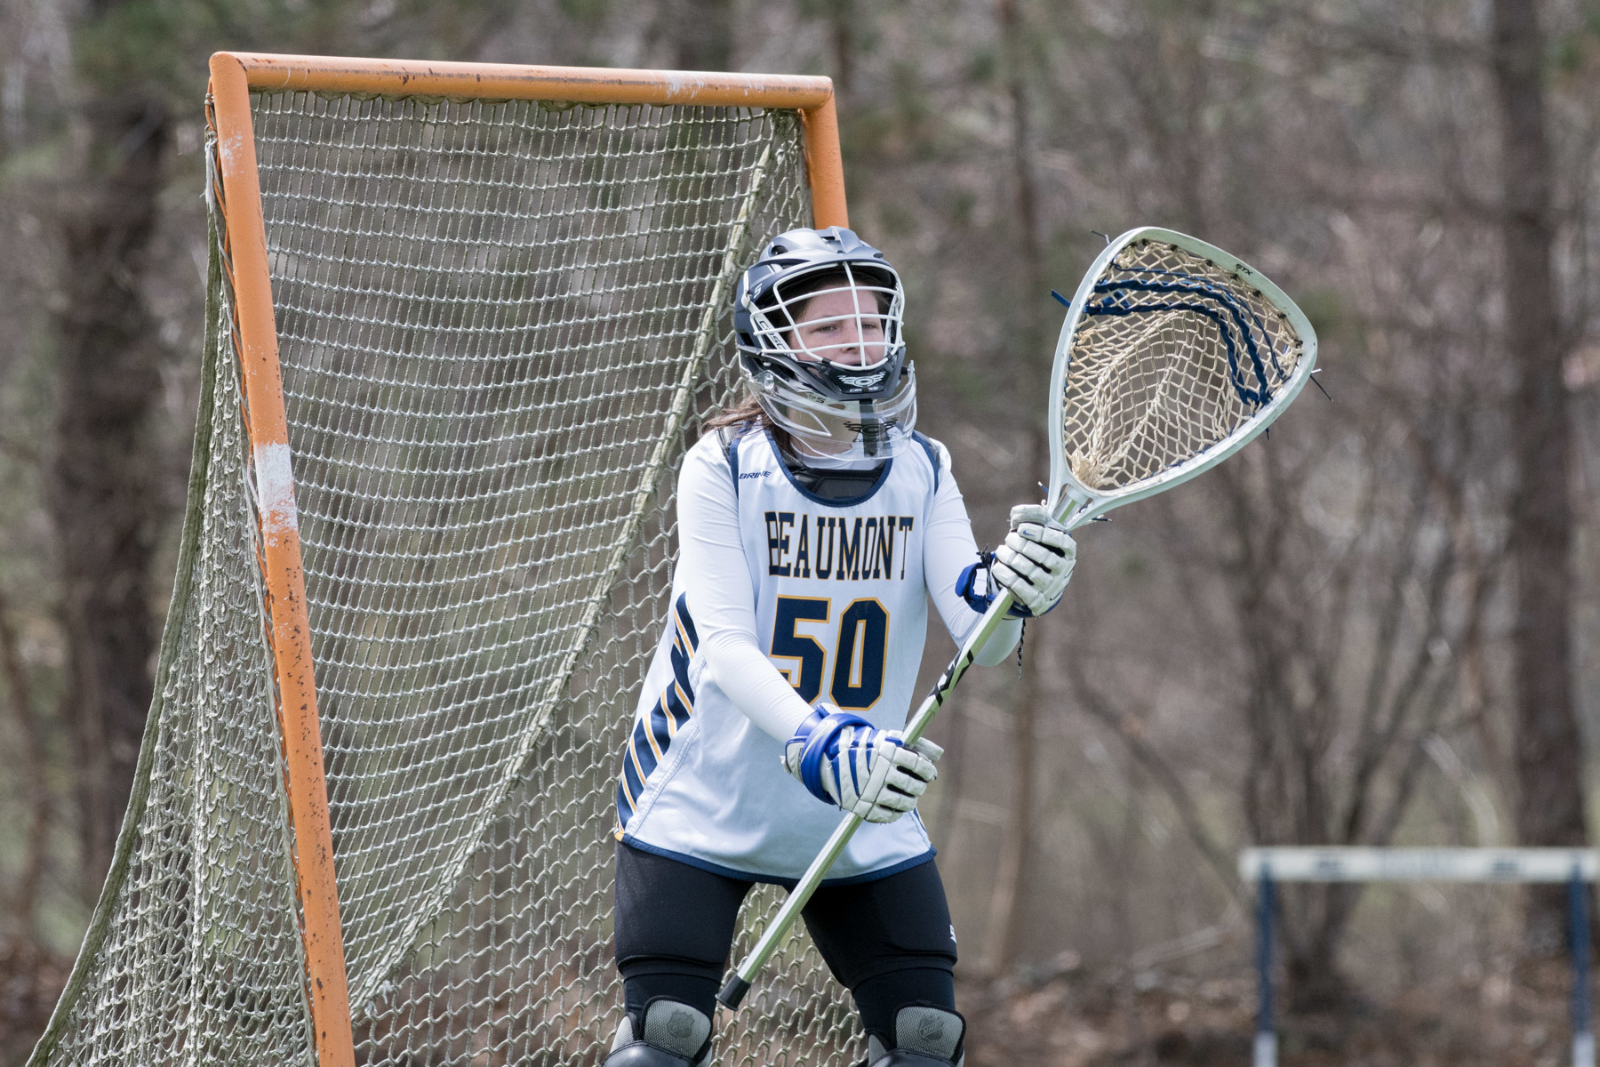 Beaumont Defeats Gilmour, 13-11, to Earn First NCL Win of Season